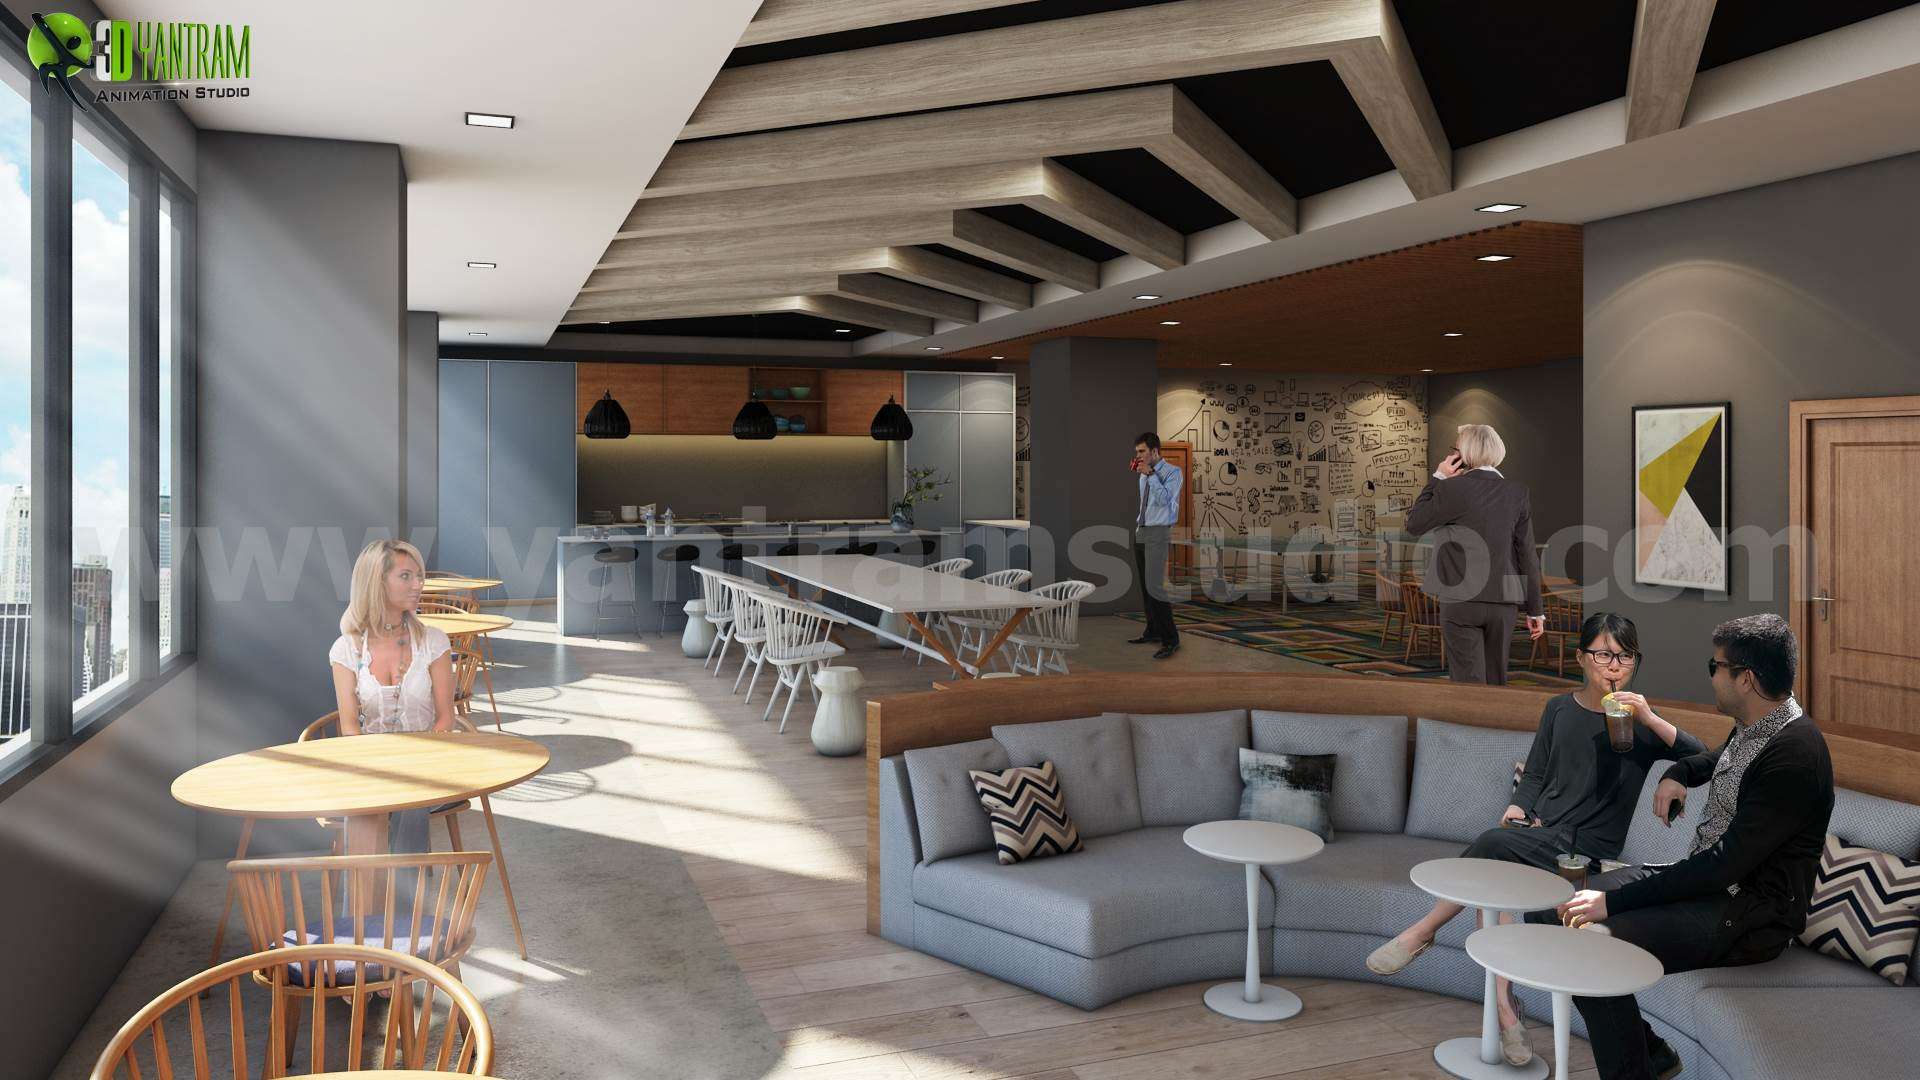 Commercial Kitchen 3d Design Creative Ideas For Office Interior Design By Yantram 3d Interior